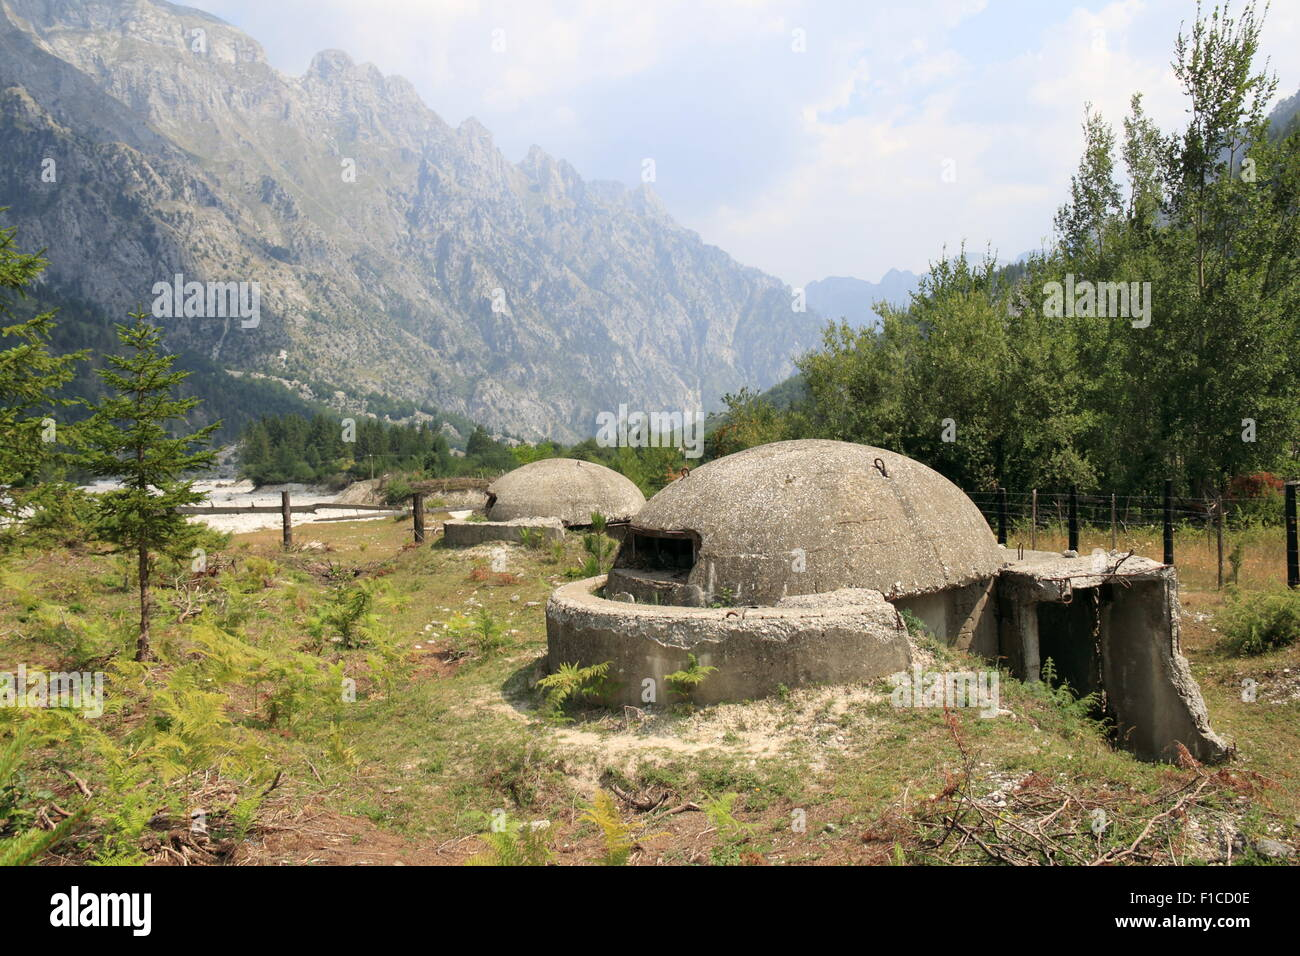 Cold War bunkers, Valbona, Valbona Valley National Park, Accursed Mountains, Albania, Balkans, Europe Stock Photo